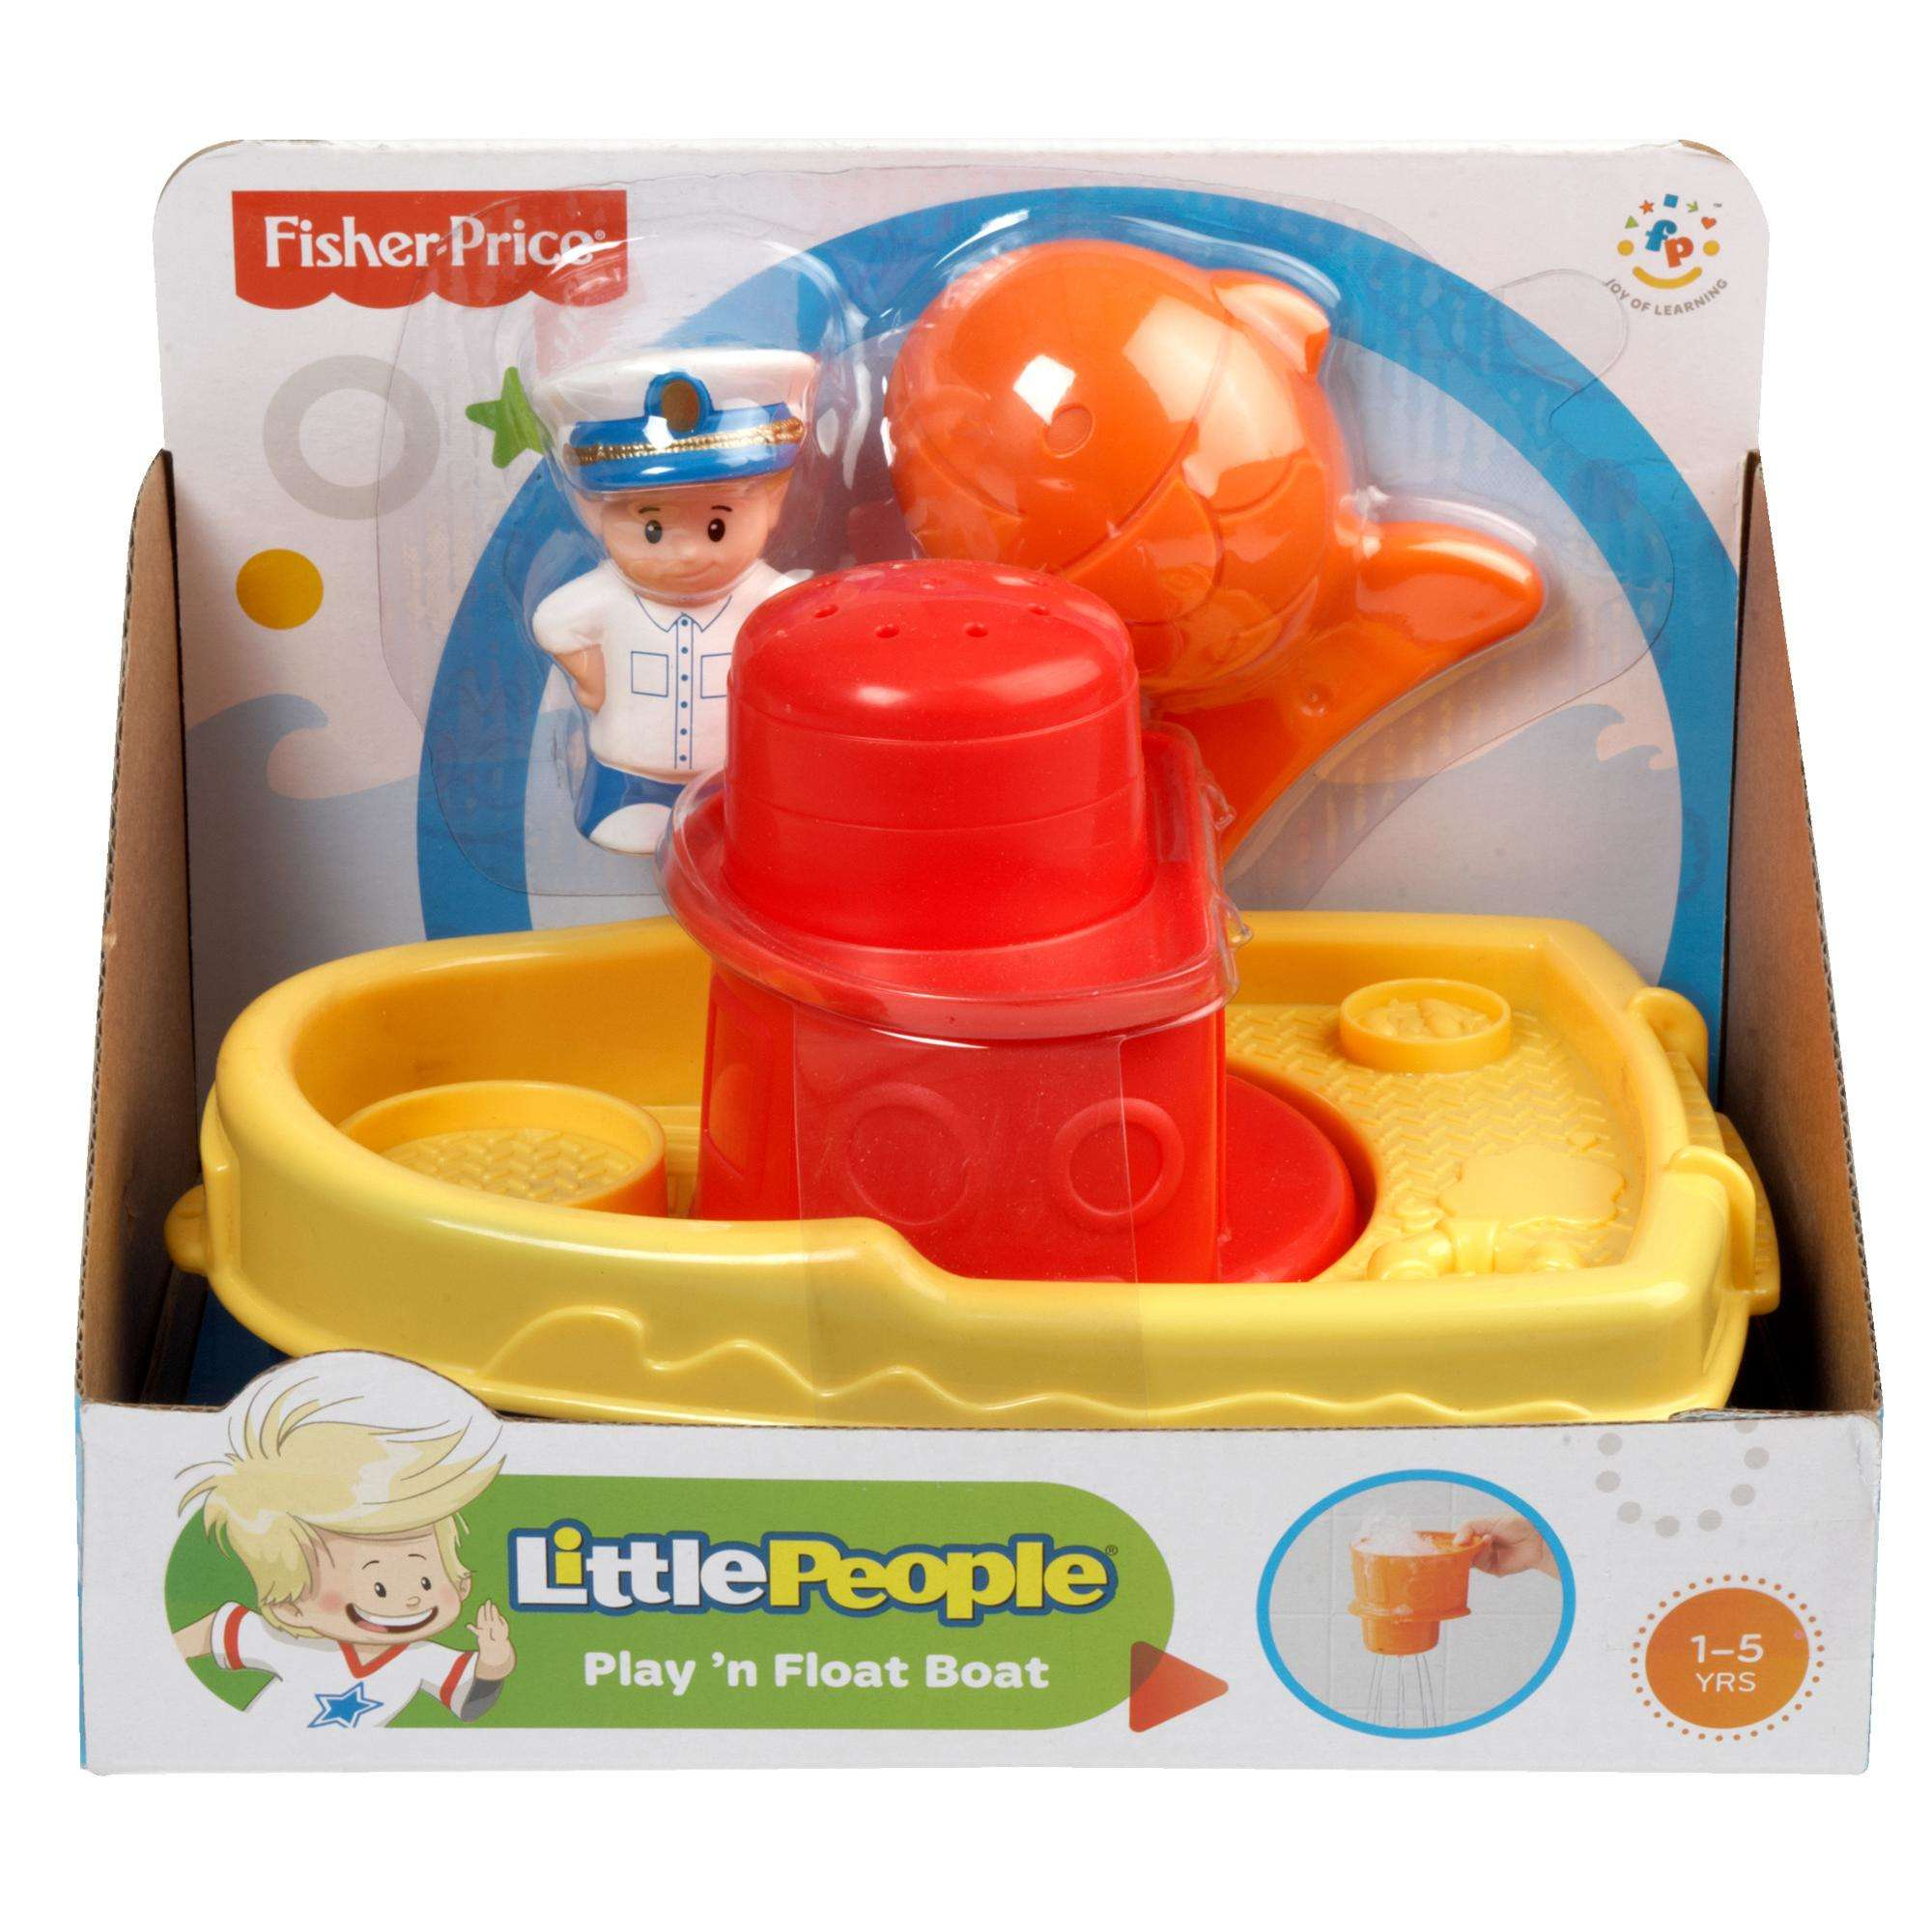 Little People Play 'N Float Bath Boat